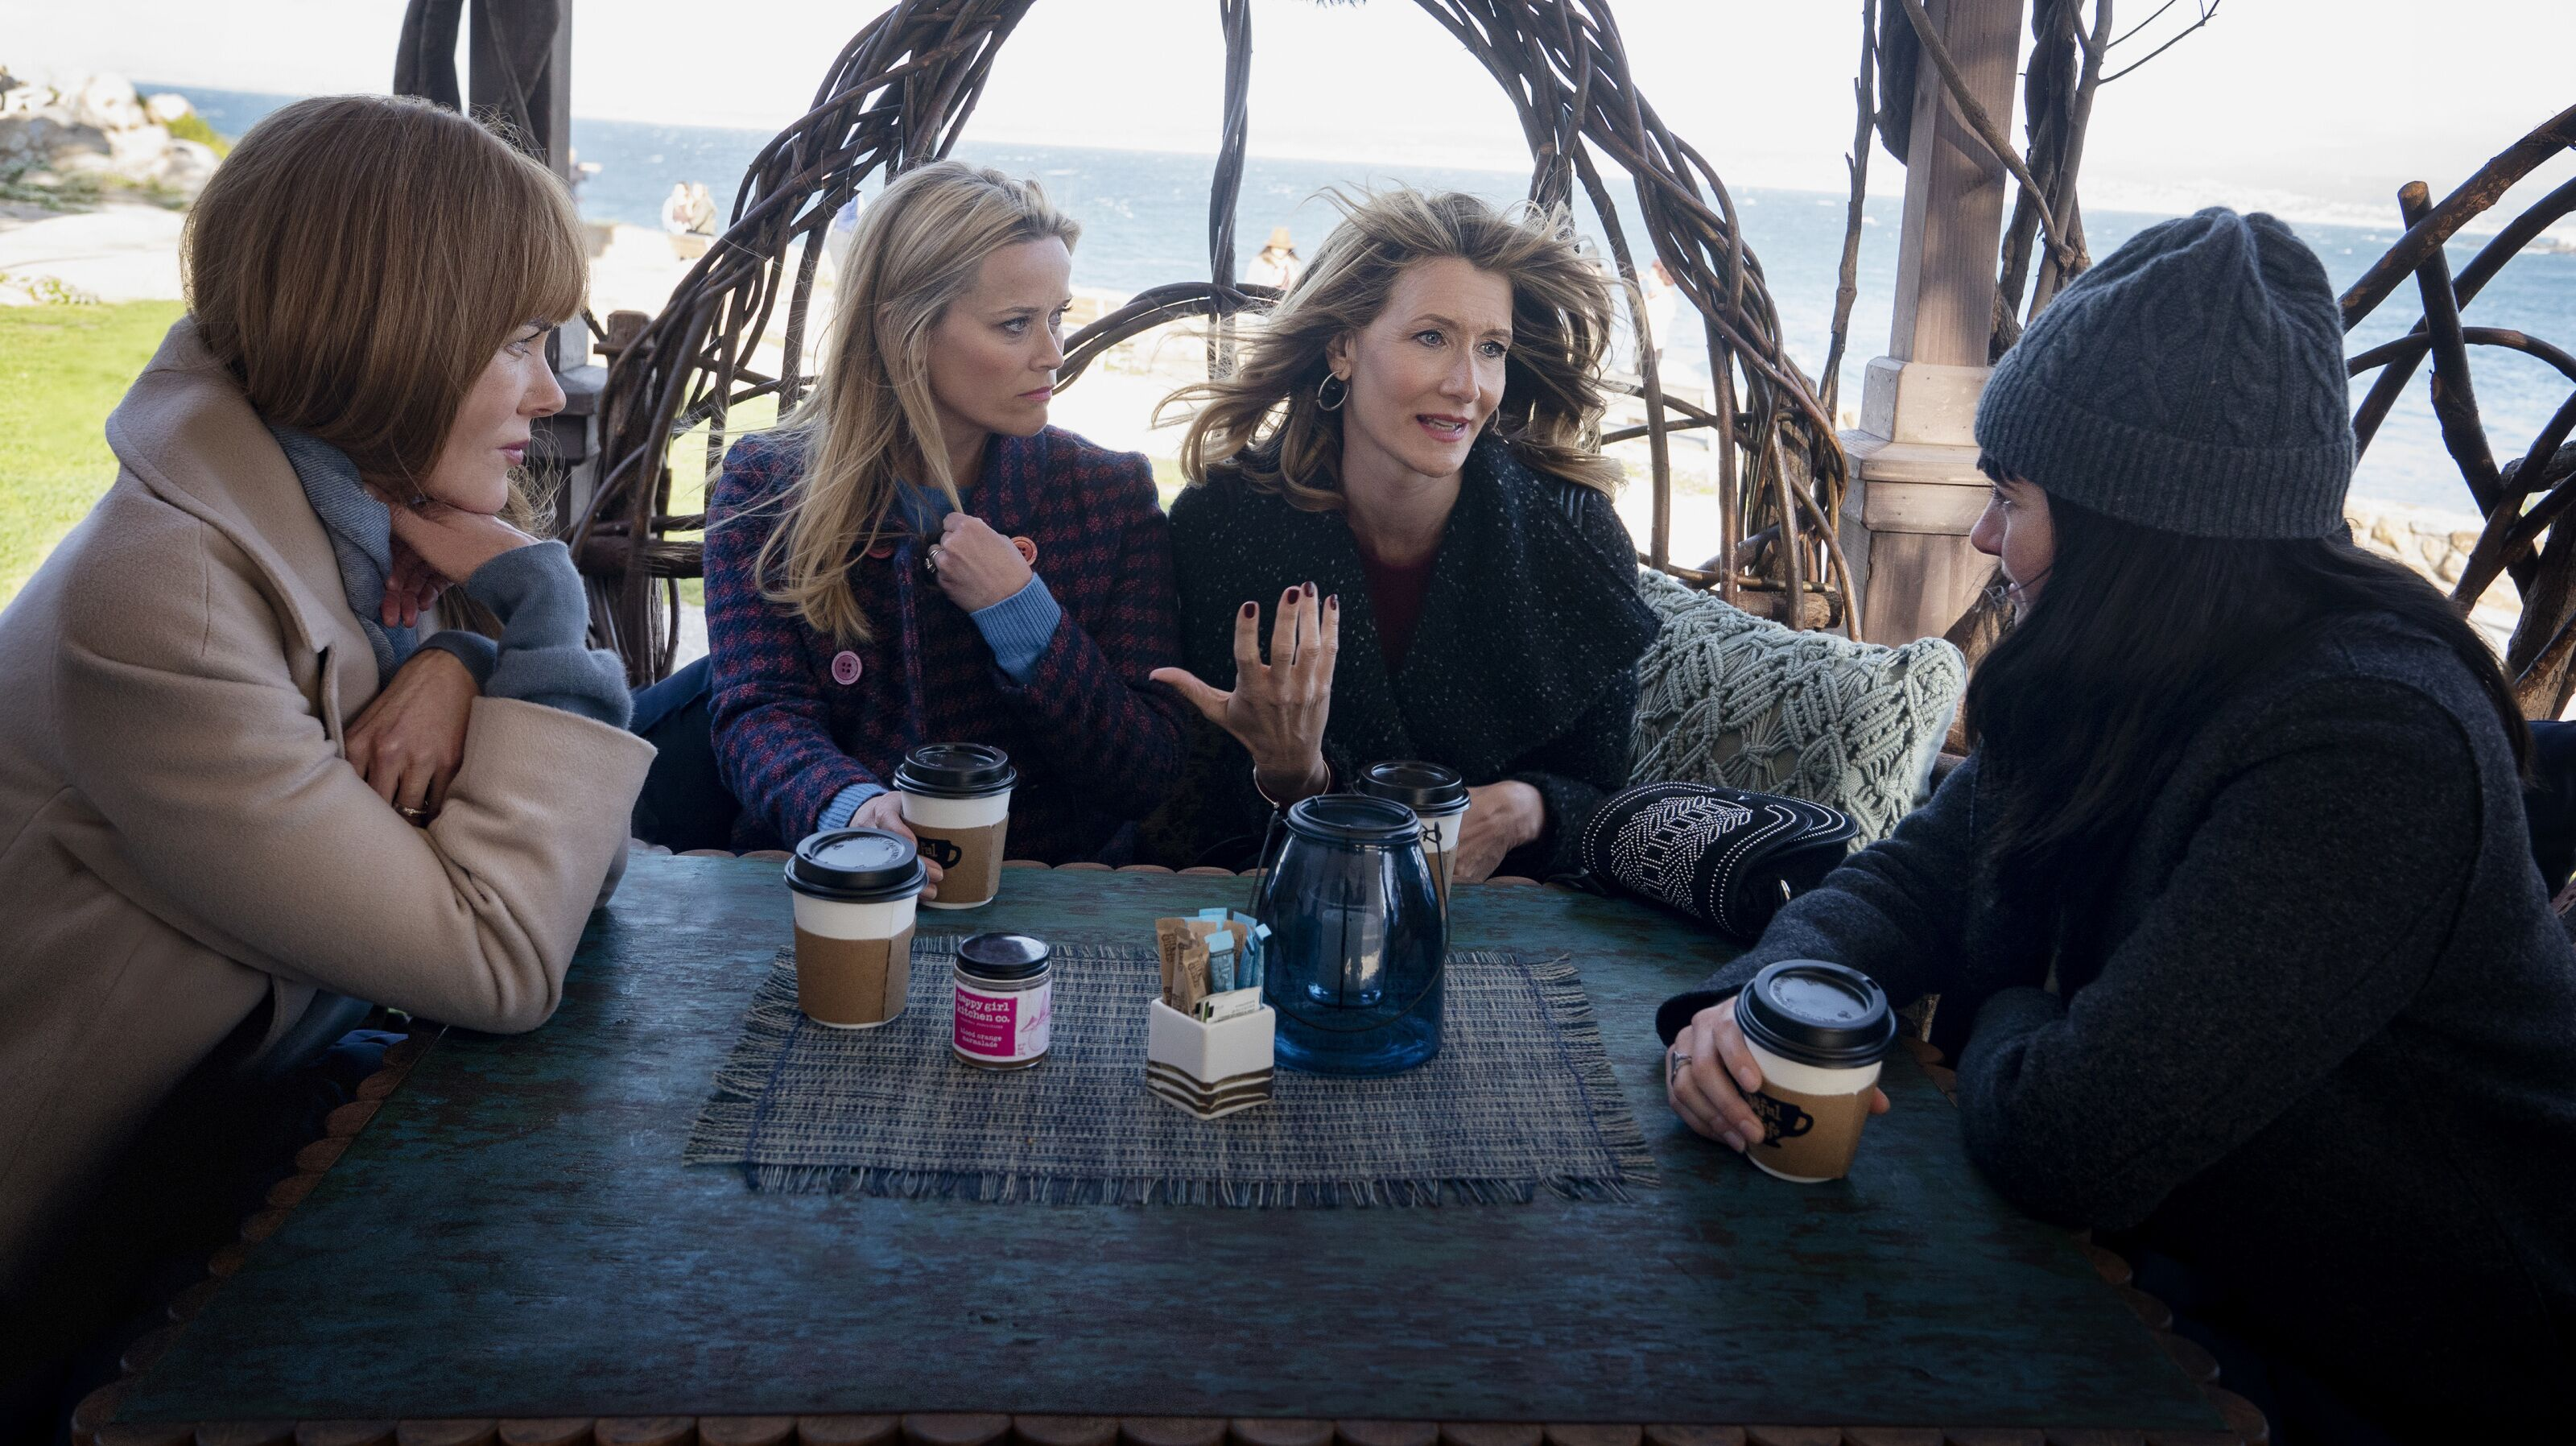 Will Big Little Lies get a Season 3? Depends on the writers